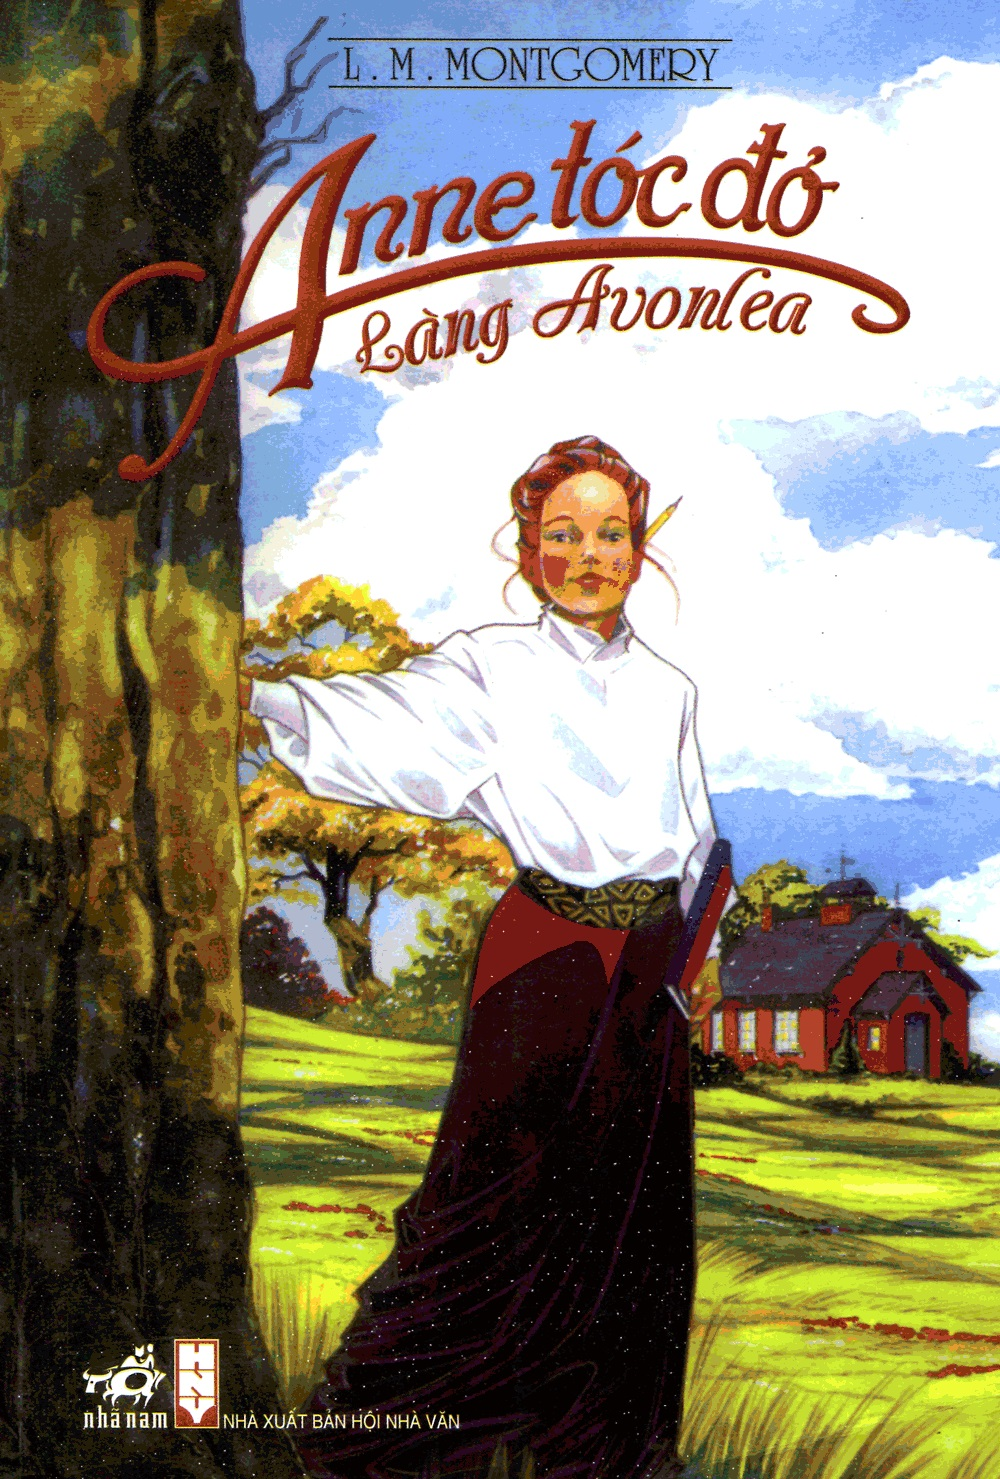 Anne toc do lang avonlea.u2673.d20160826.t175840.435646